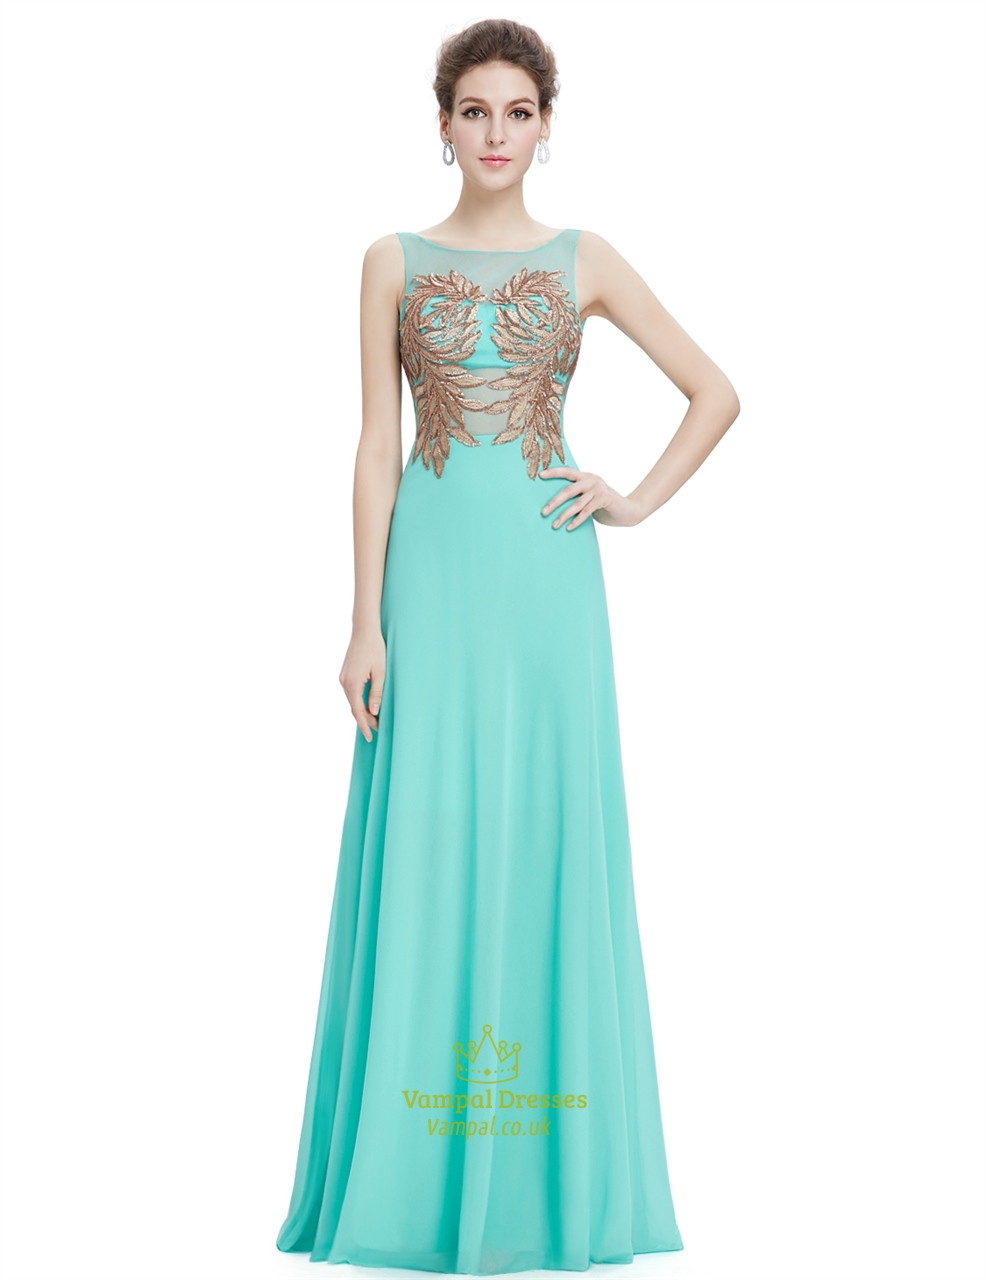 Mint Green Sleeveless Chiffon Prom Dress With Gold Accents Vampal